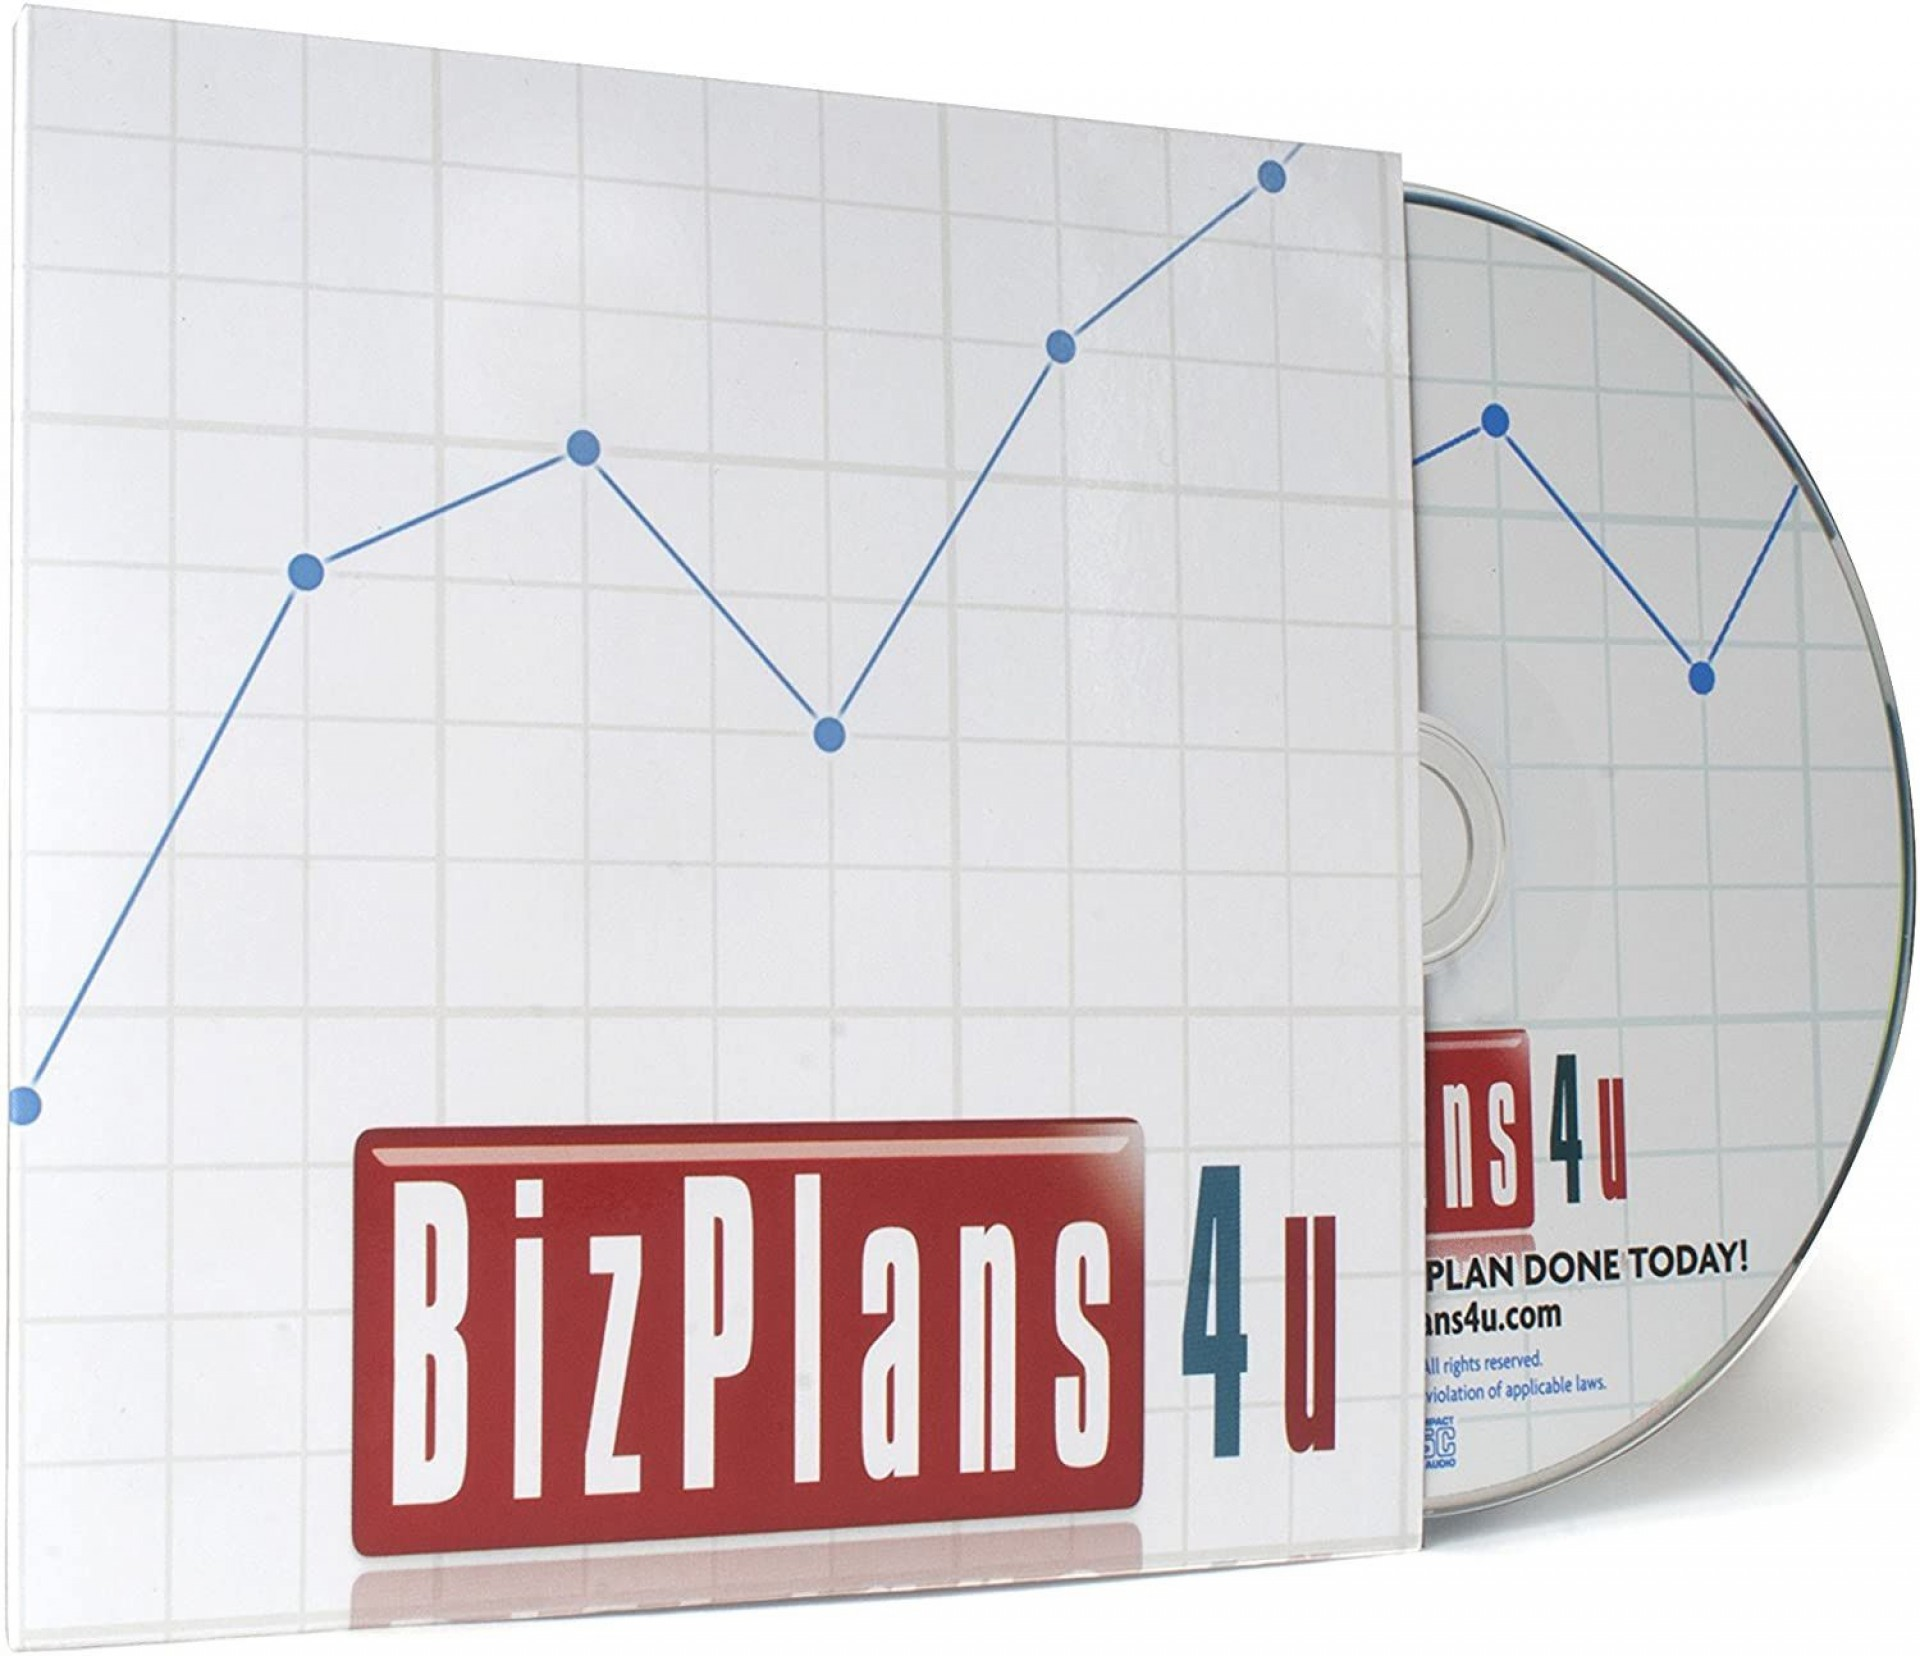 000 Impressive M Excel Busines Plan Template High Def  Microsoft Office1920